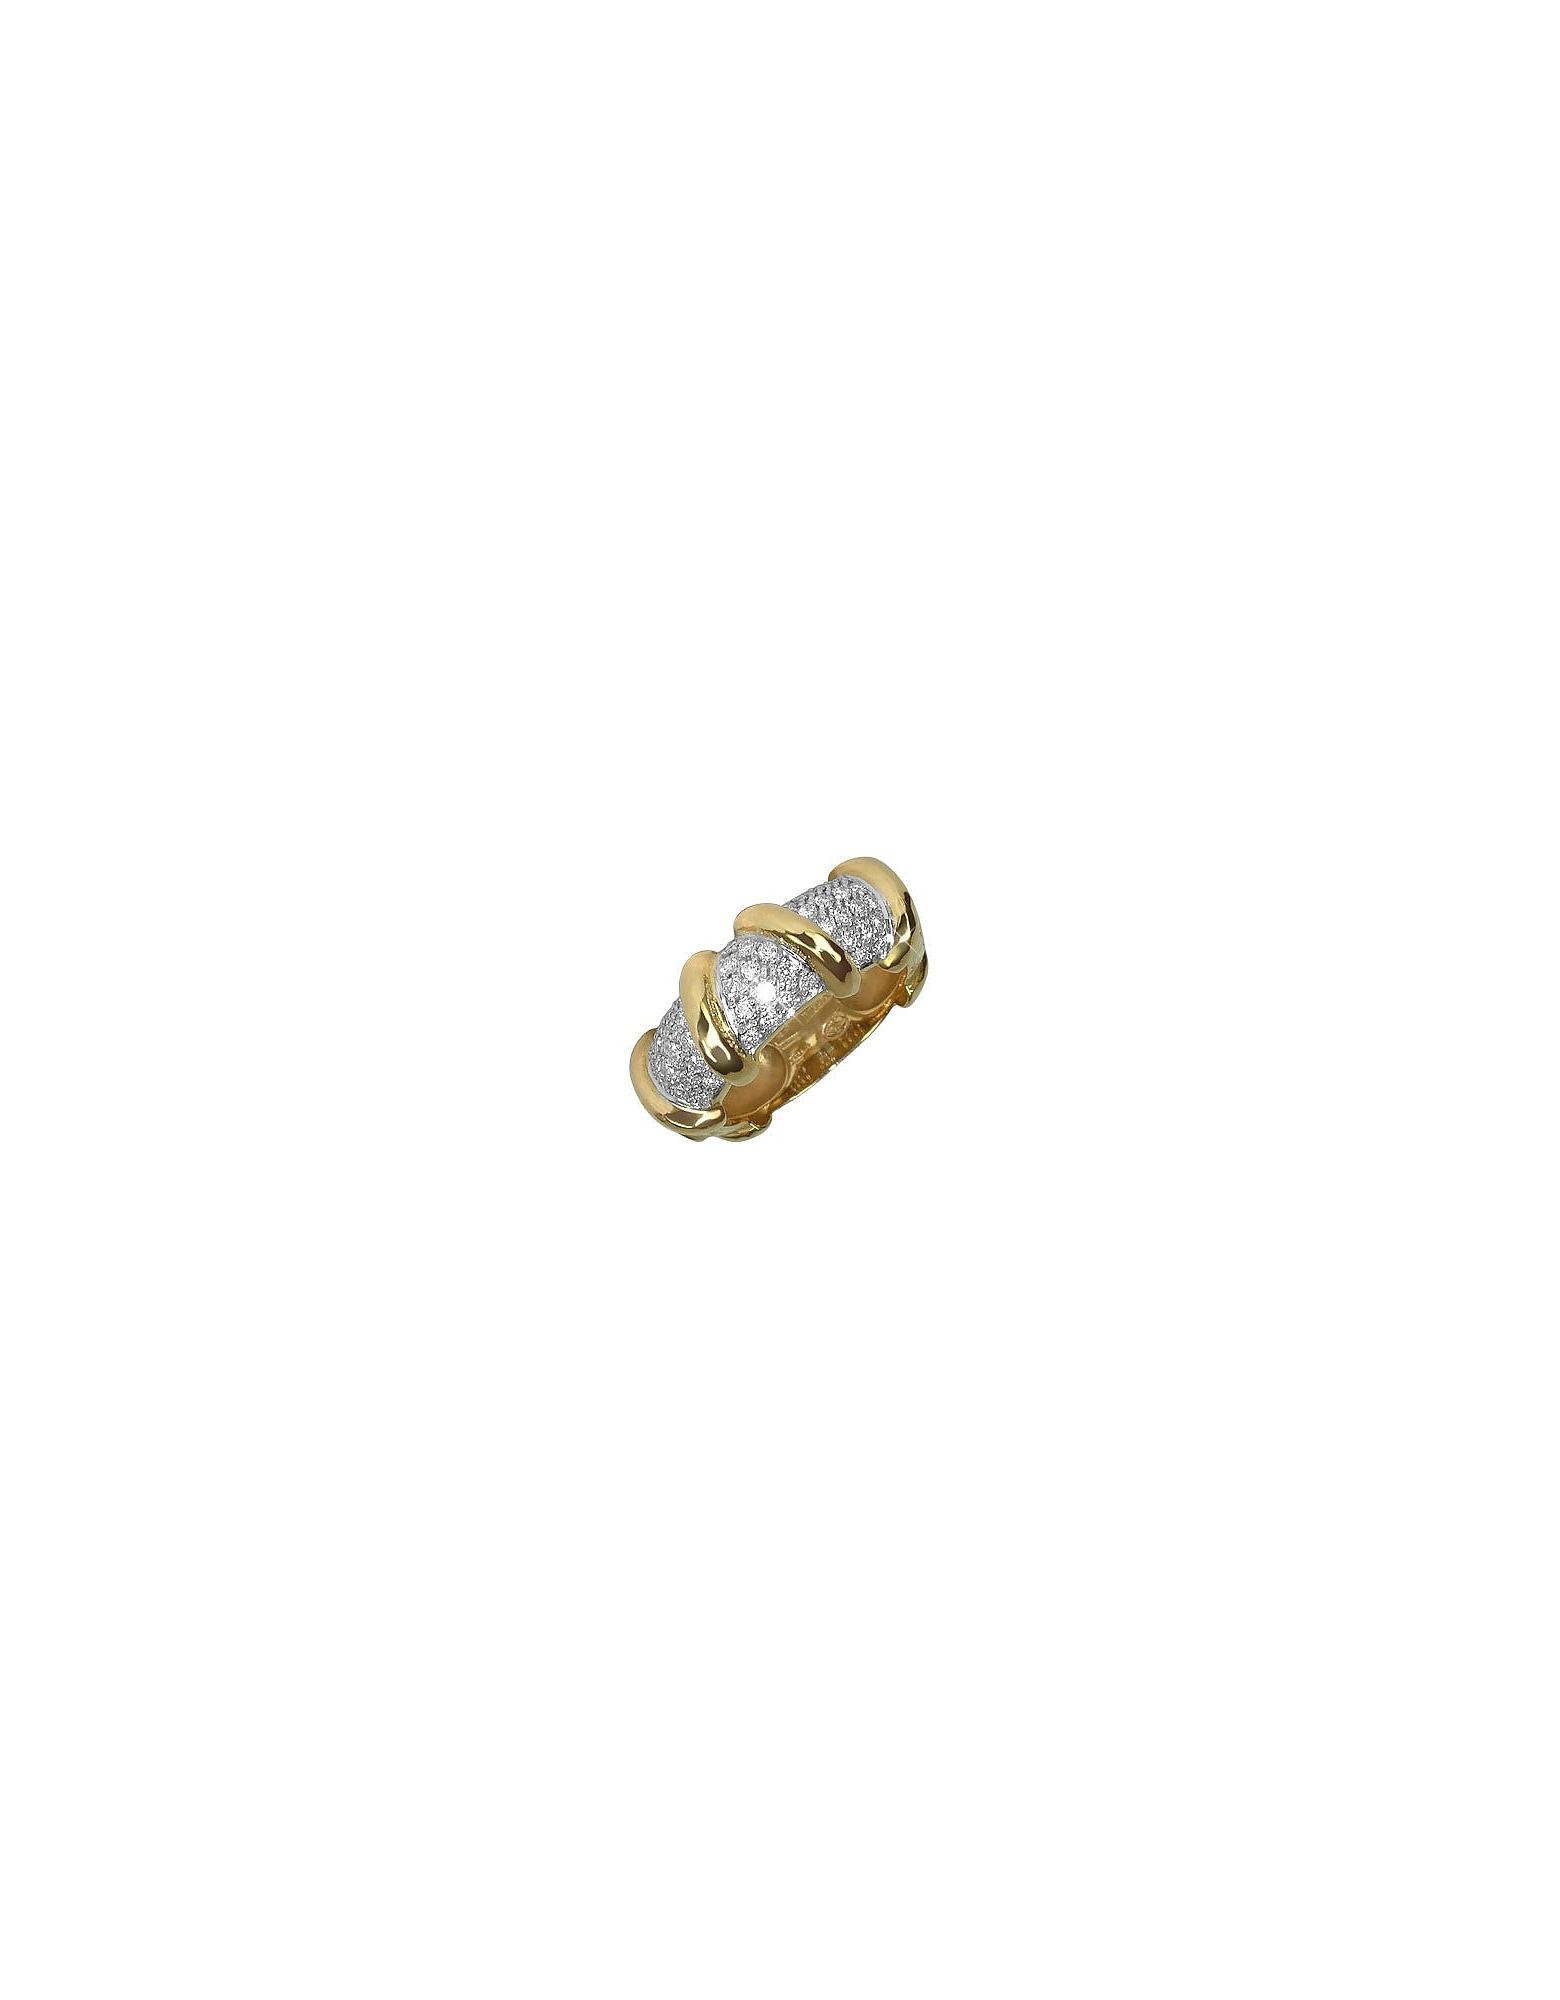 Torrini Rings, Twister - 18K Yellow Gold Diamond Ring